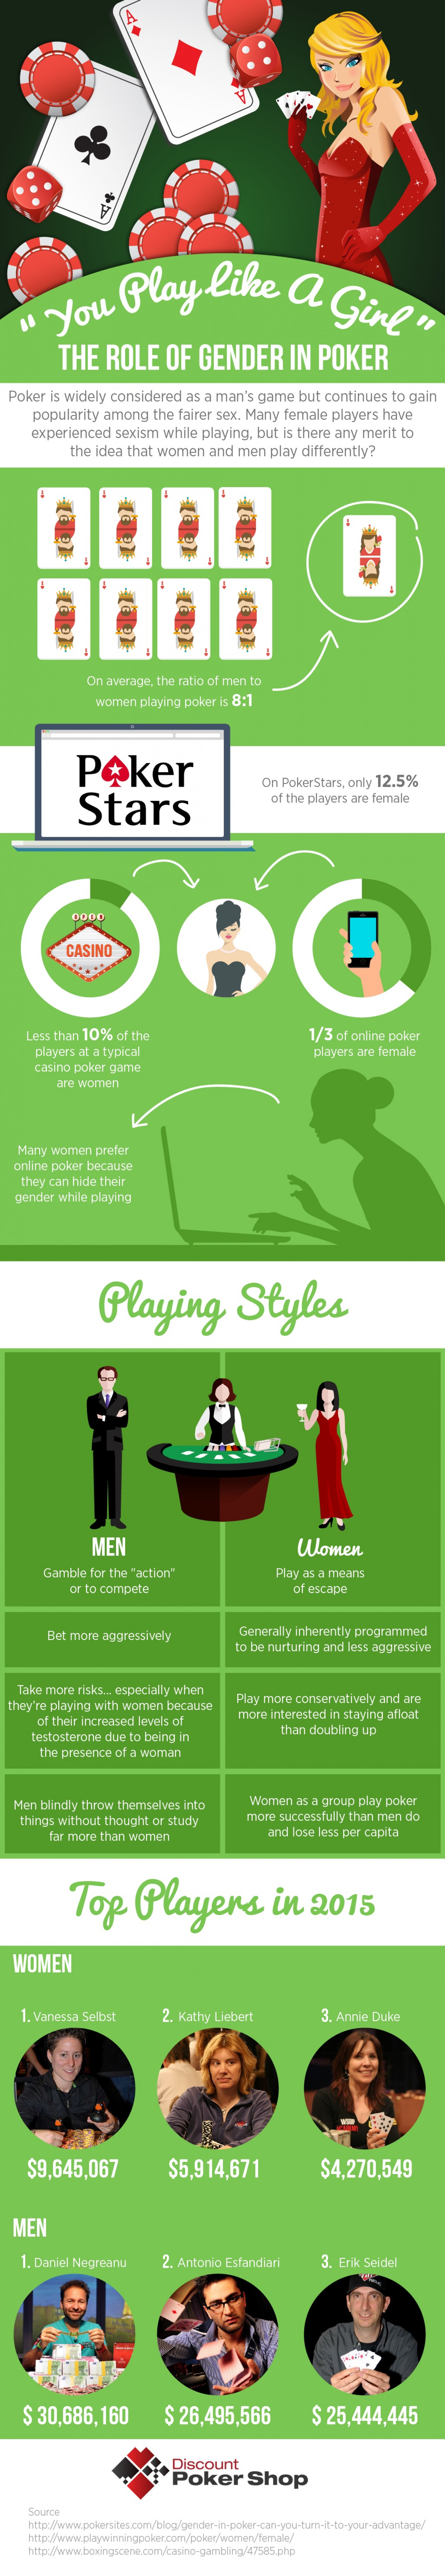 """ You Play like a Girl""- The role of gender in Poker Infographic"